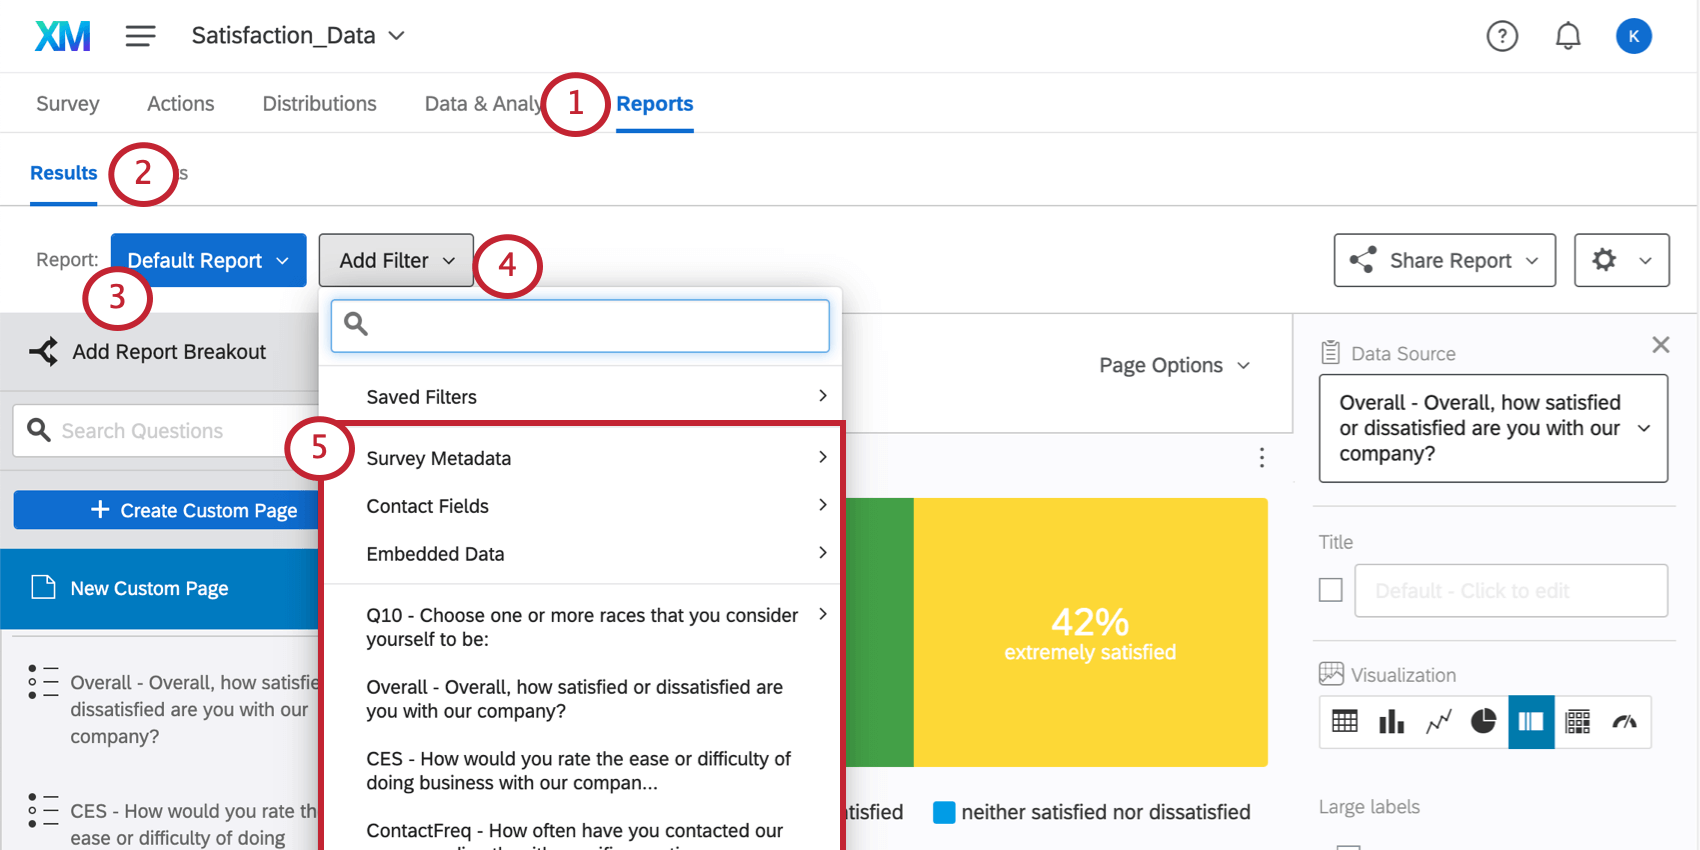 Add Filter button reveals a list of all survey fields, including questions and embedded data